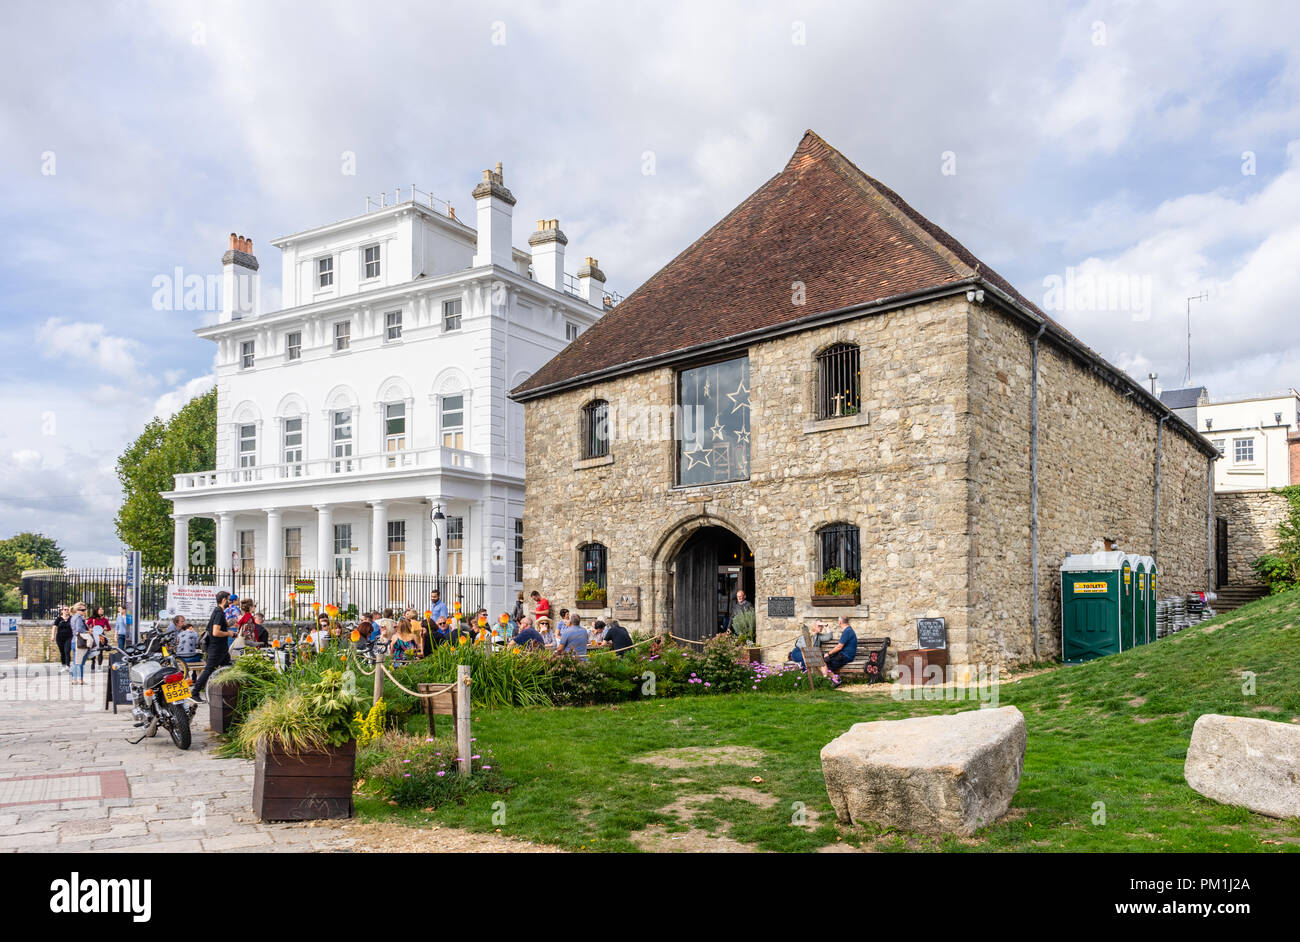 The historic Wool House converted to a craft beer brewery called Dancing Man located in the Old Town of Southampton along Town Quay 2018, England,UK - Stock Image